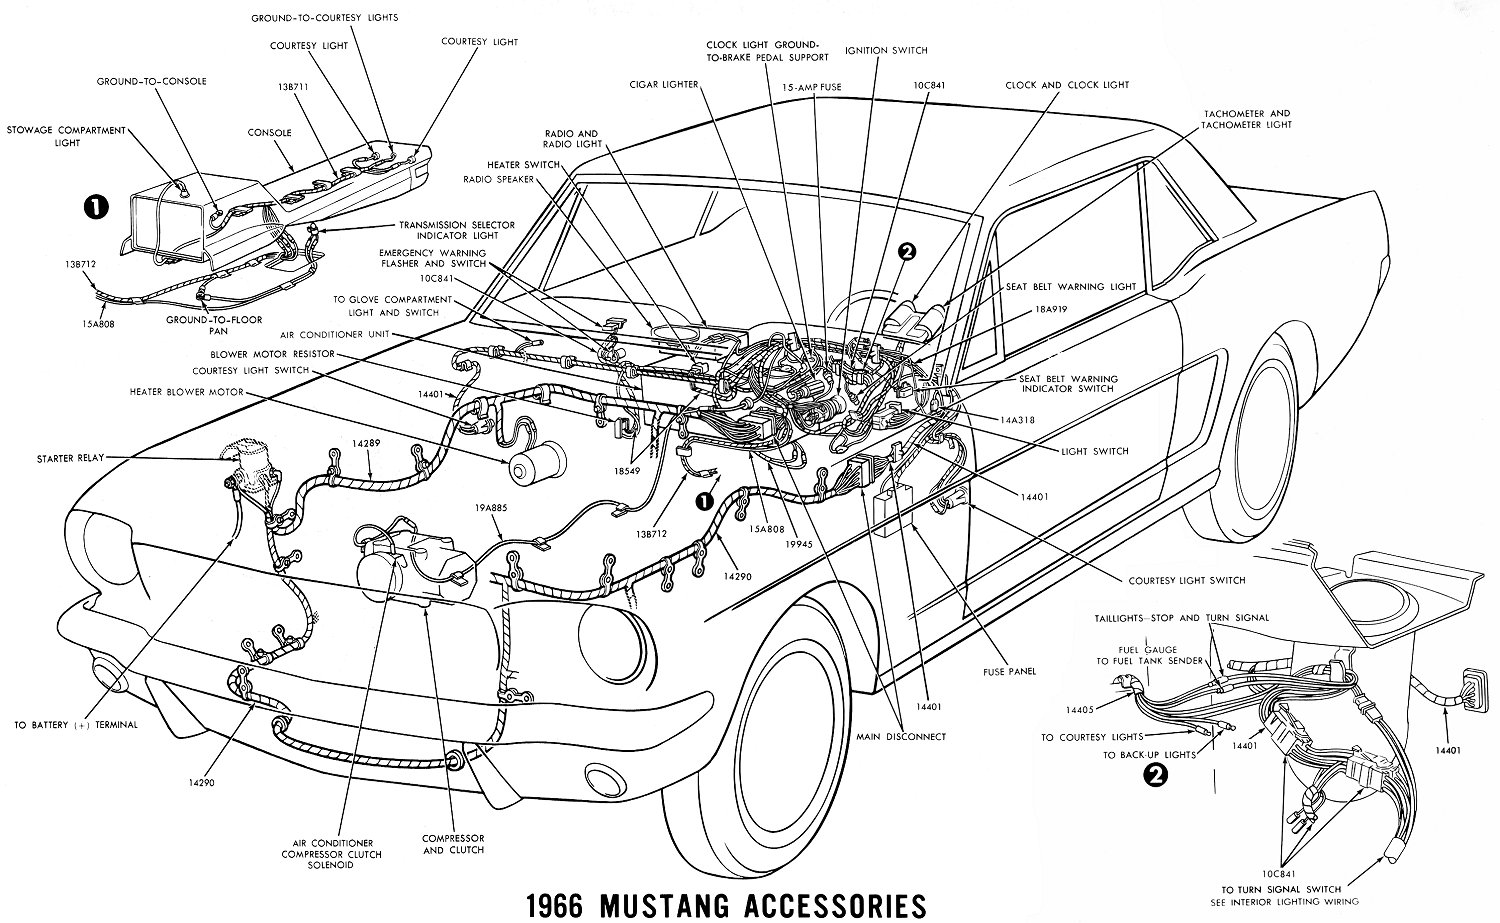 1966 Mustang Wiring Diagrams on Car Air Conditioning Wiring Diagram